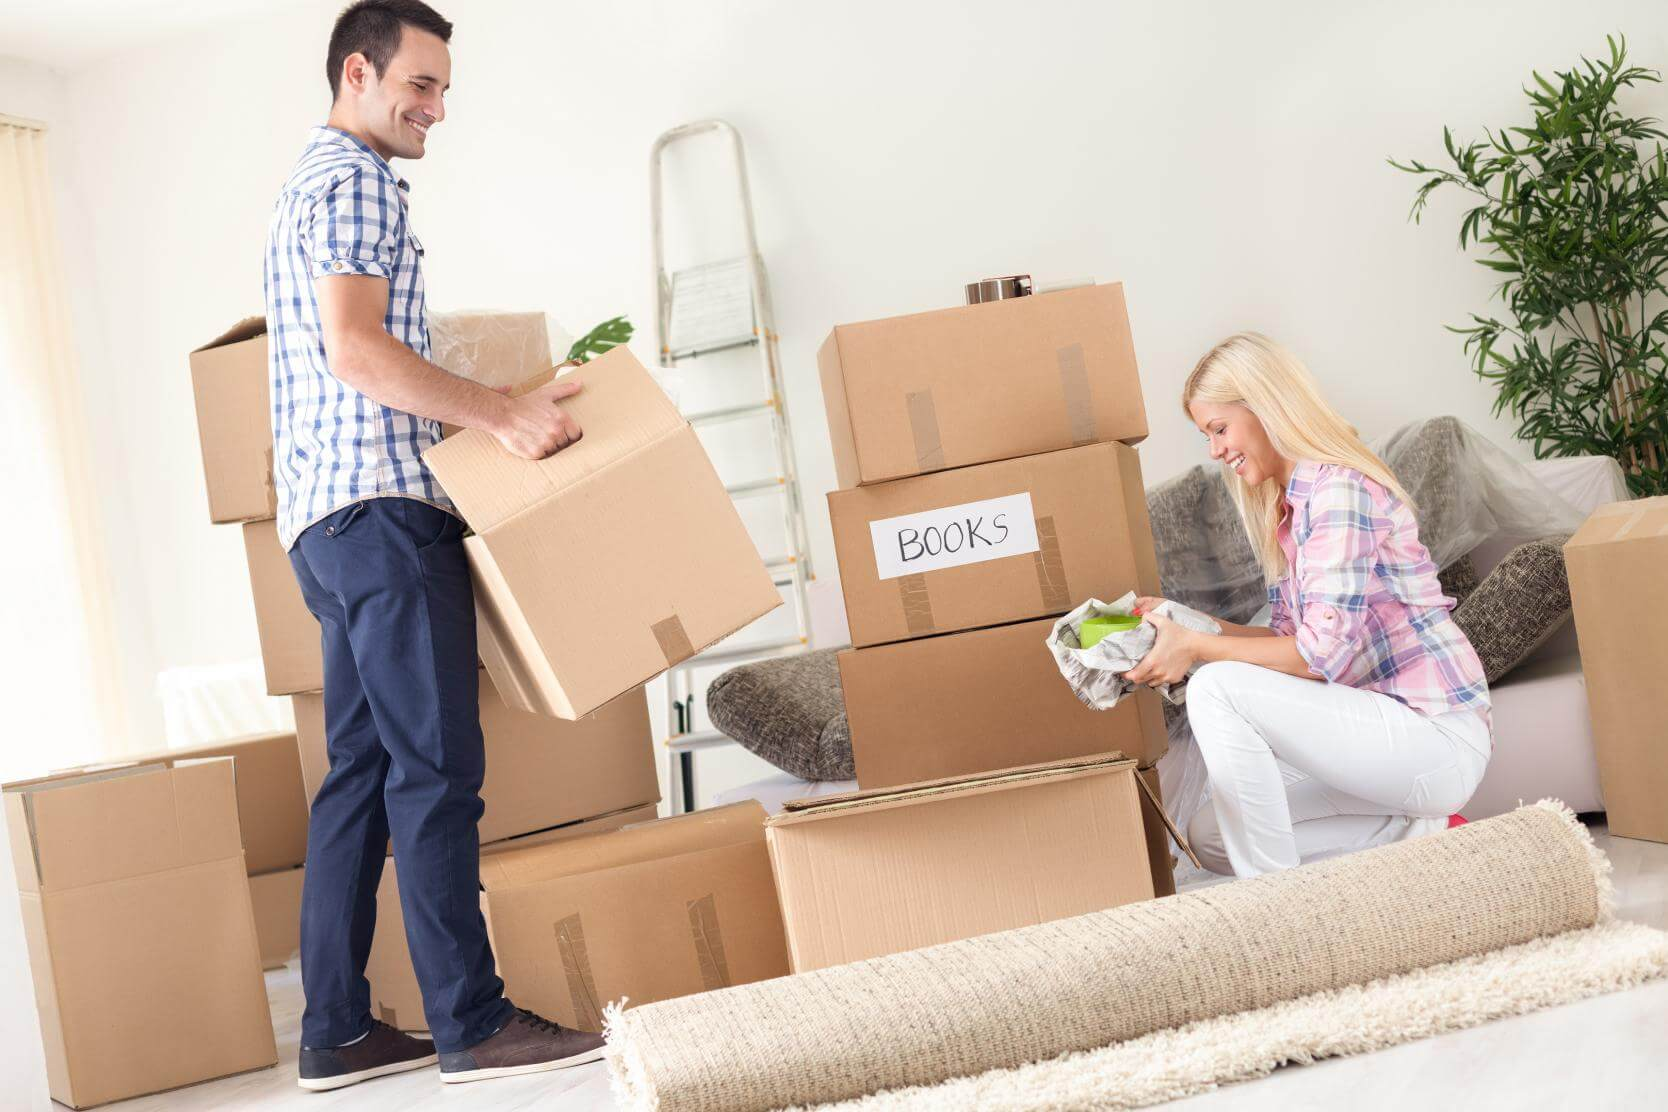 Few Tips on Finding The Right Moving Company in White Plains